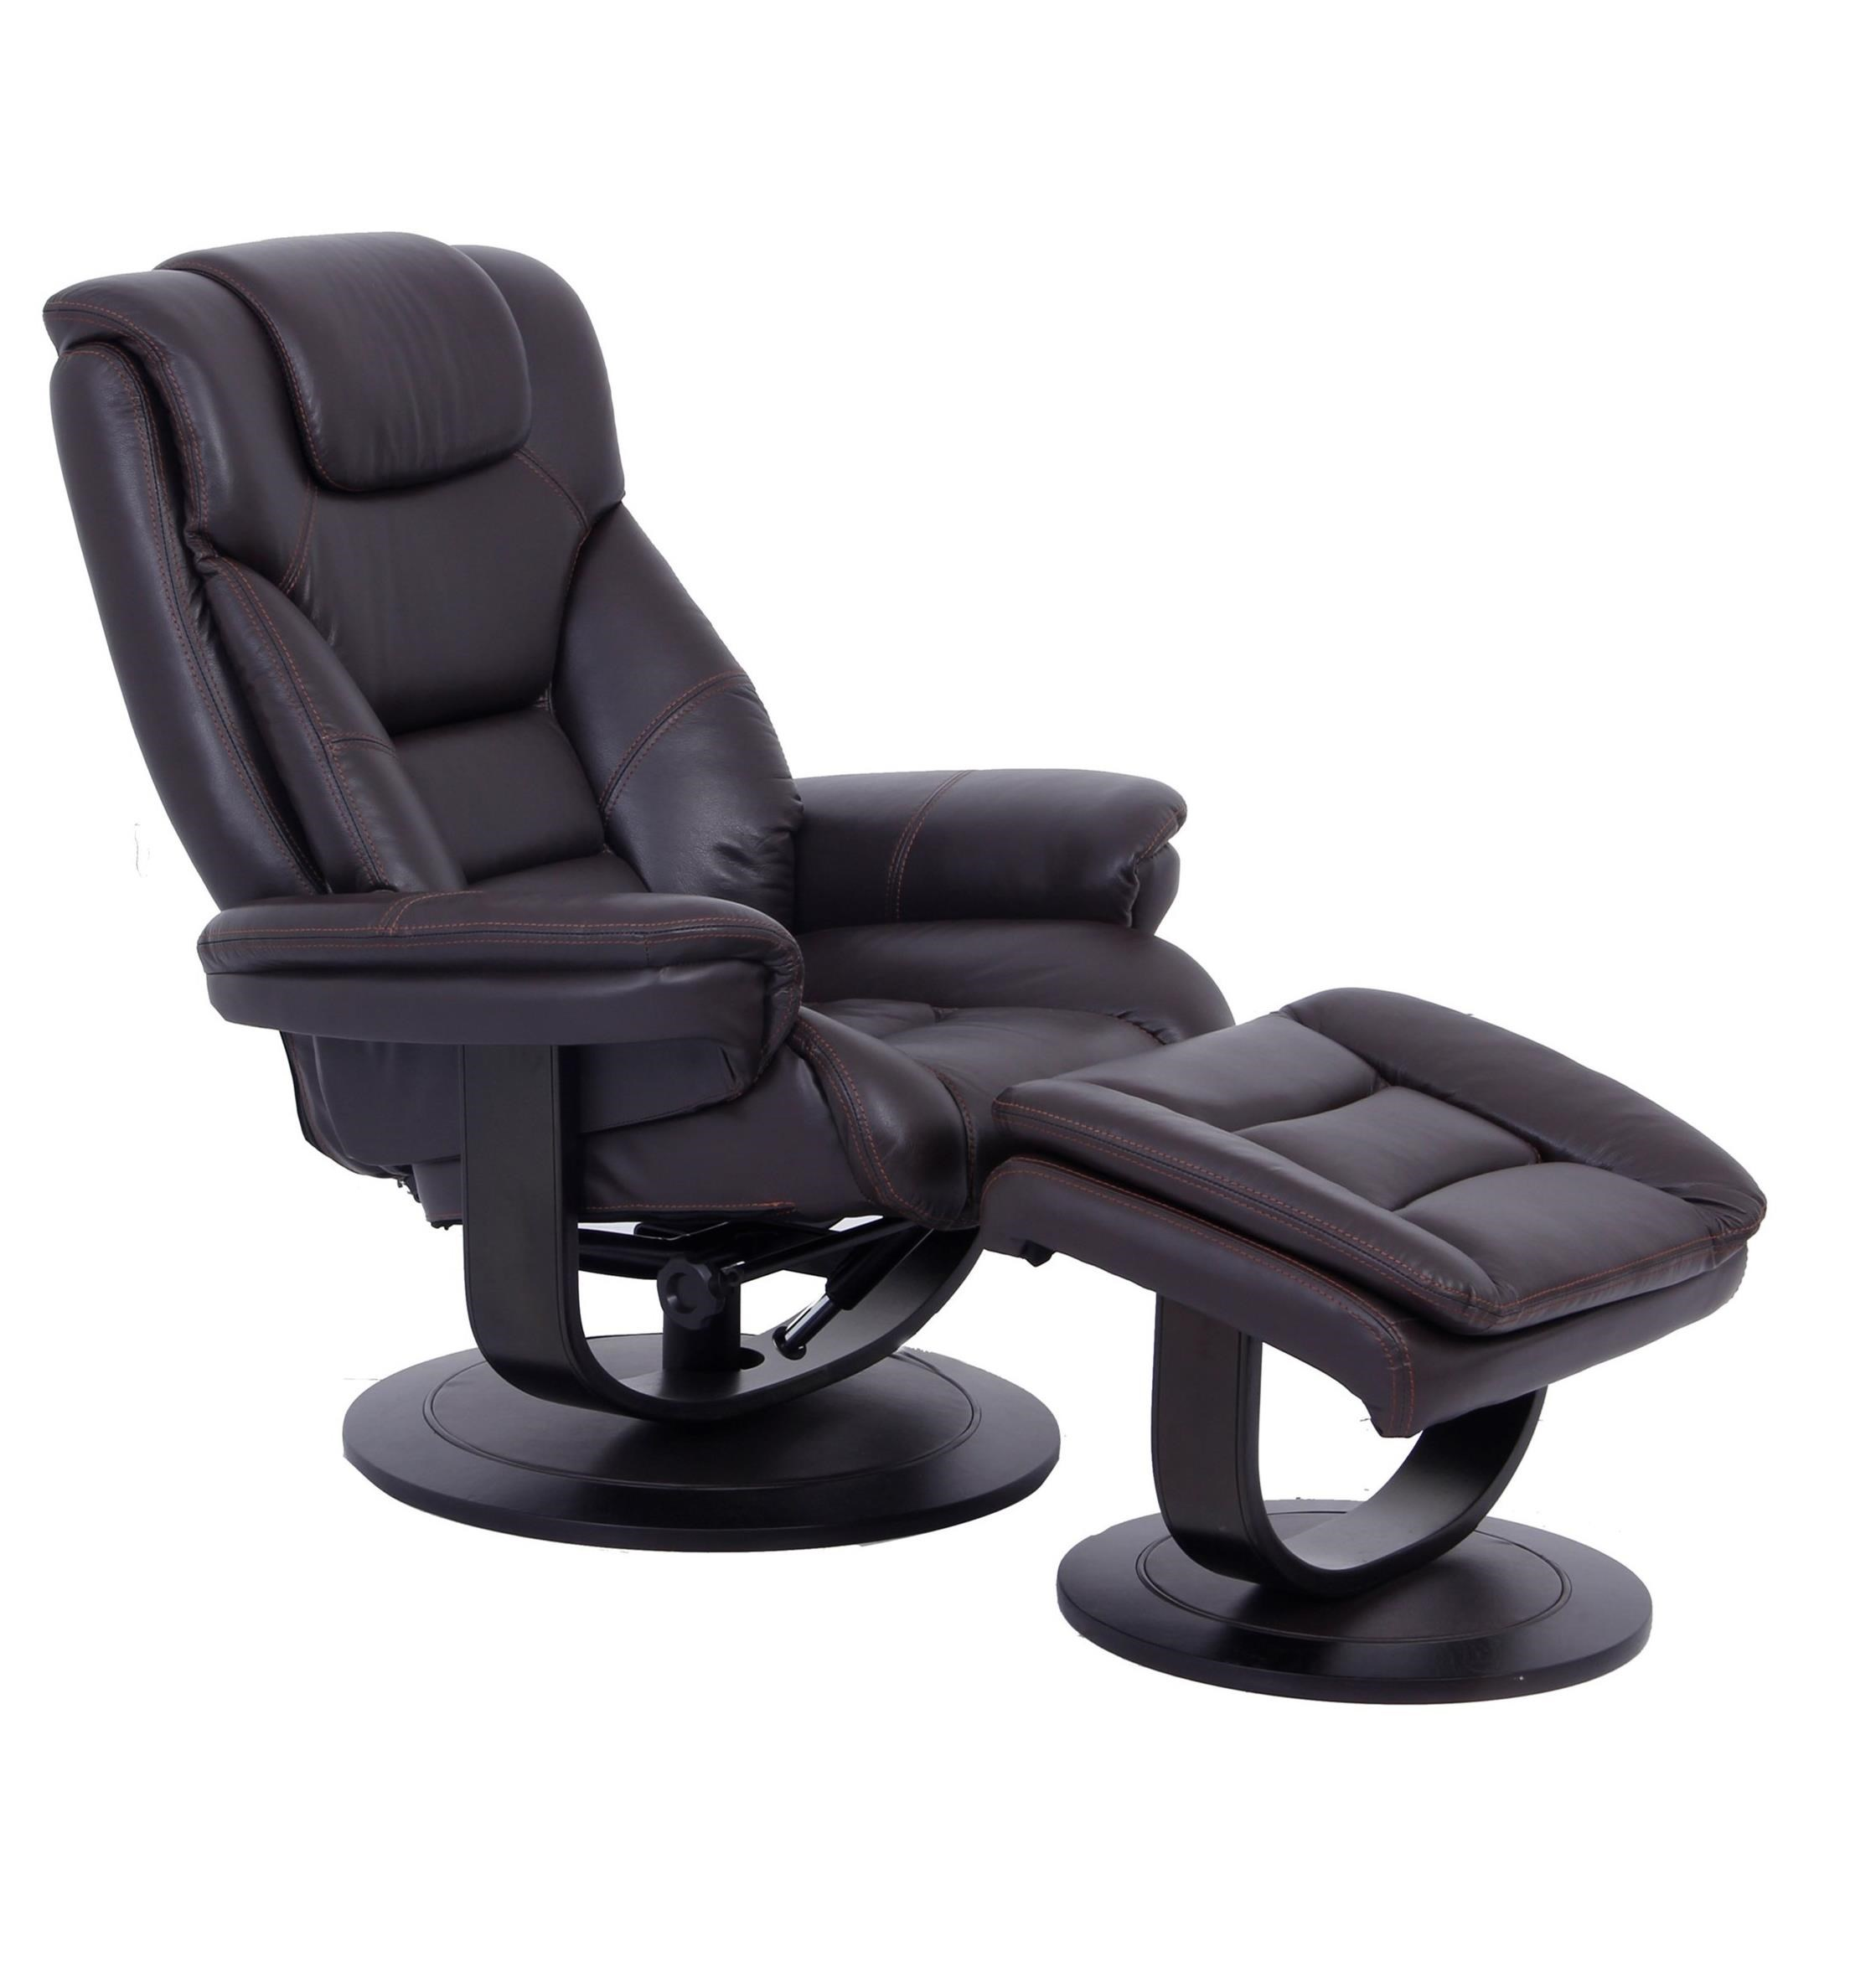 Swivel Recliner Chairs K827 Pushback Reclining Swivel Chair And Ottoman By Cheers Sofa At Dunk Bright Furniture